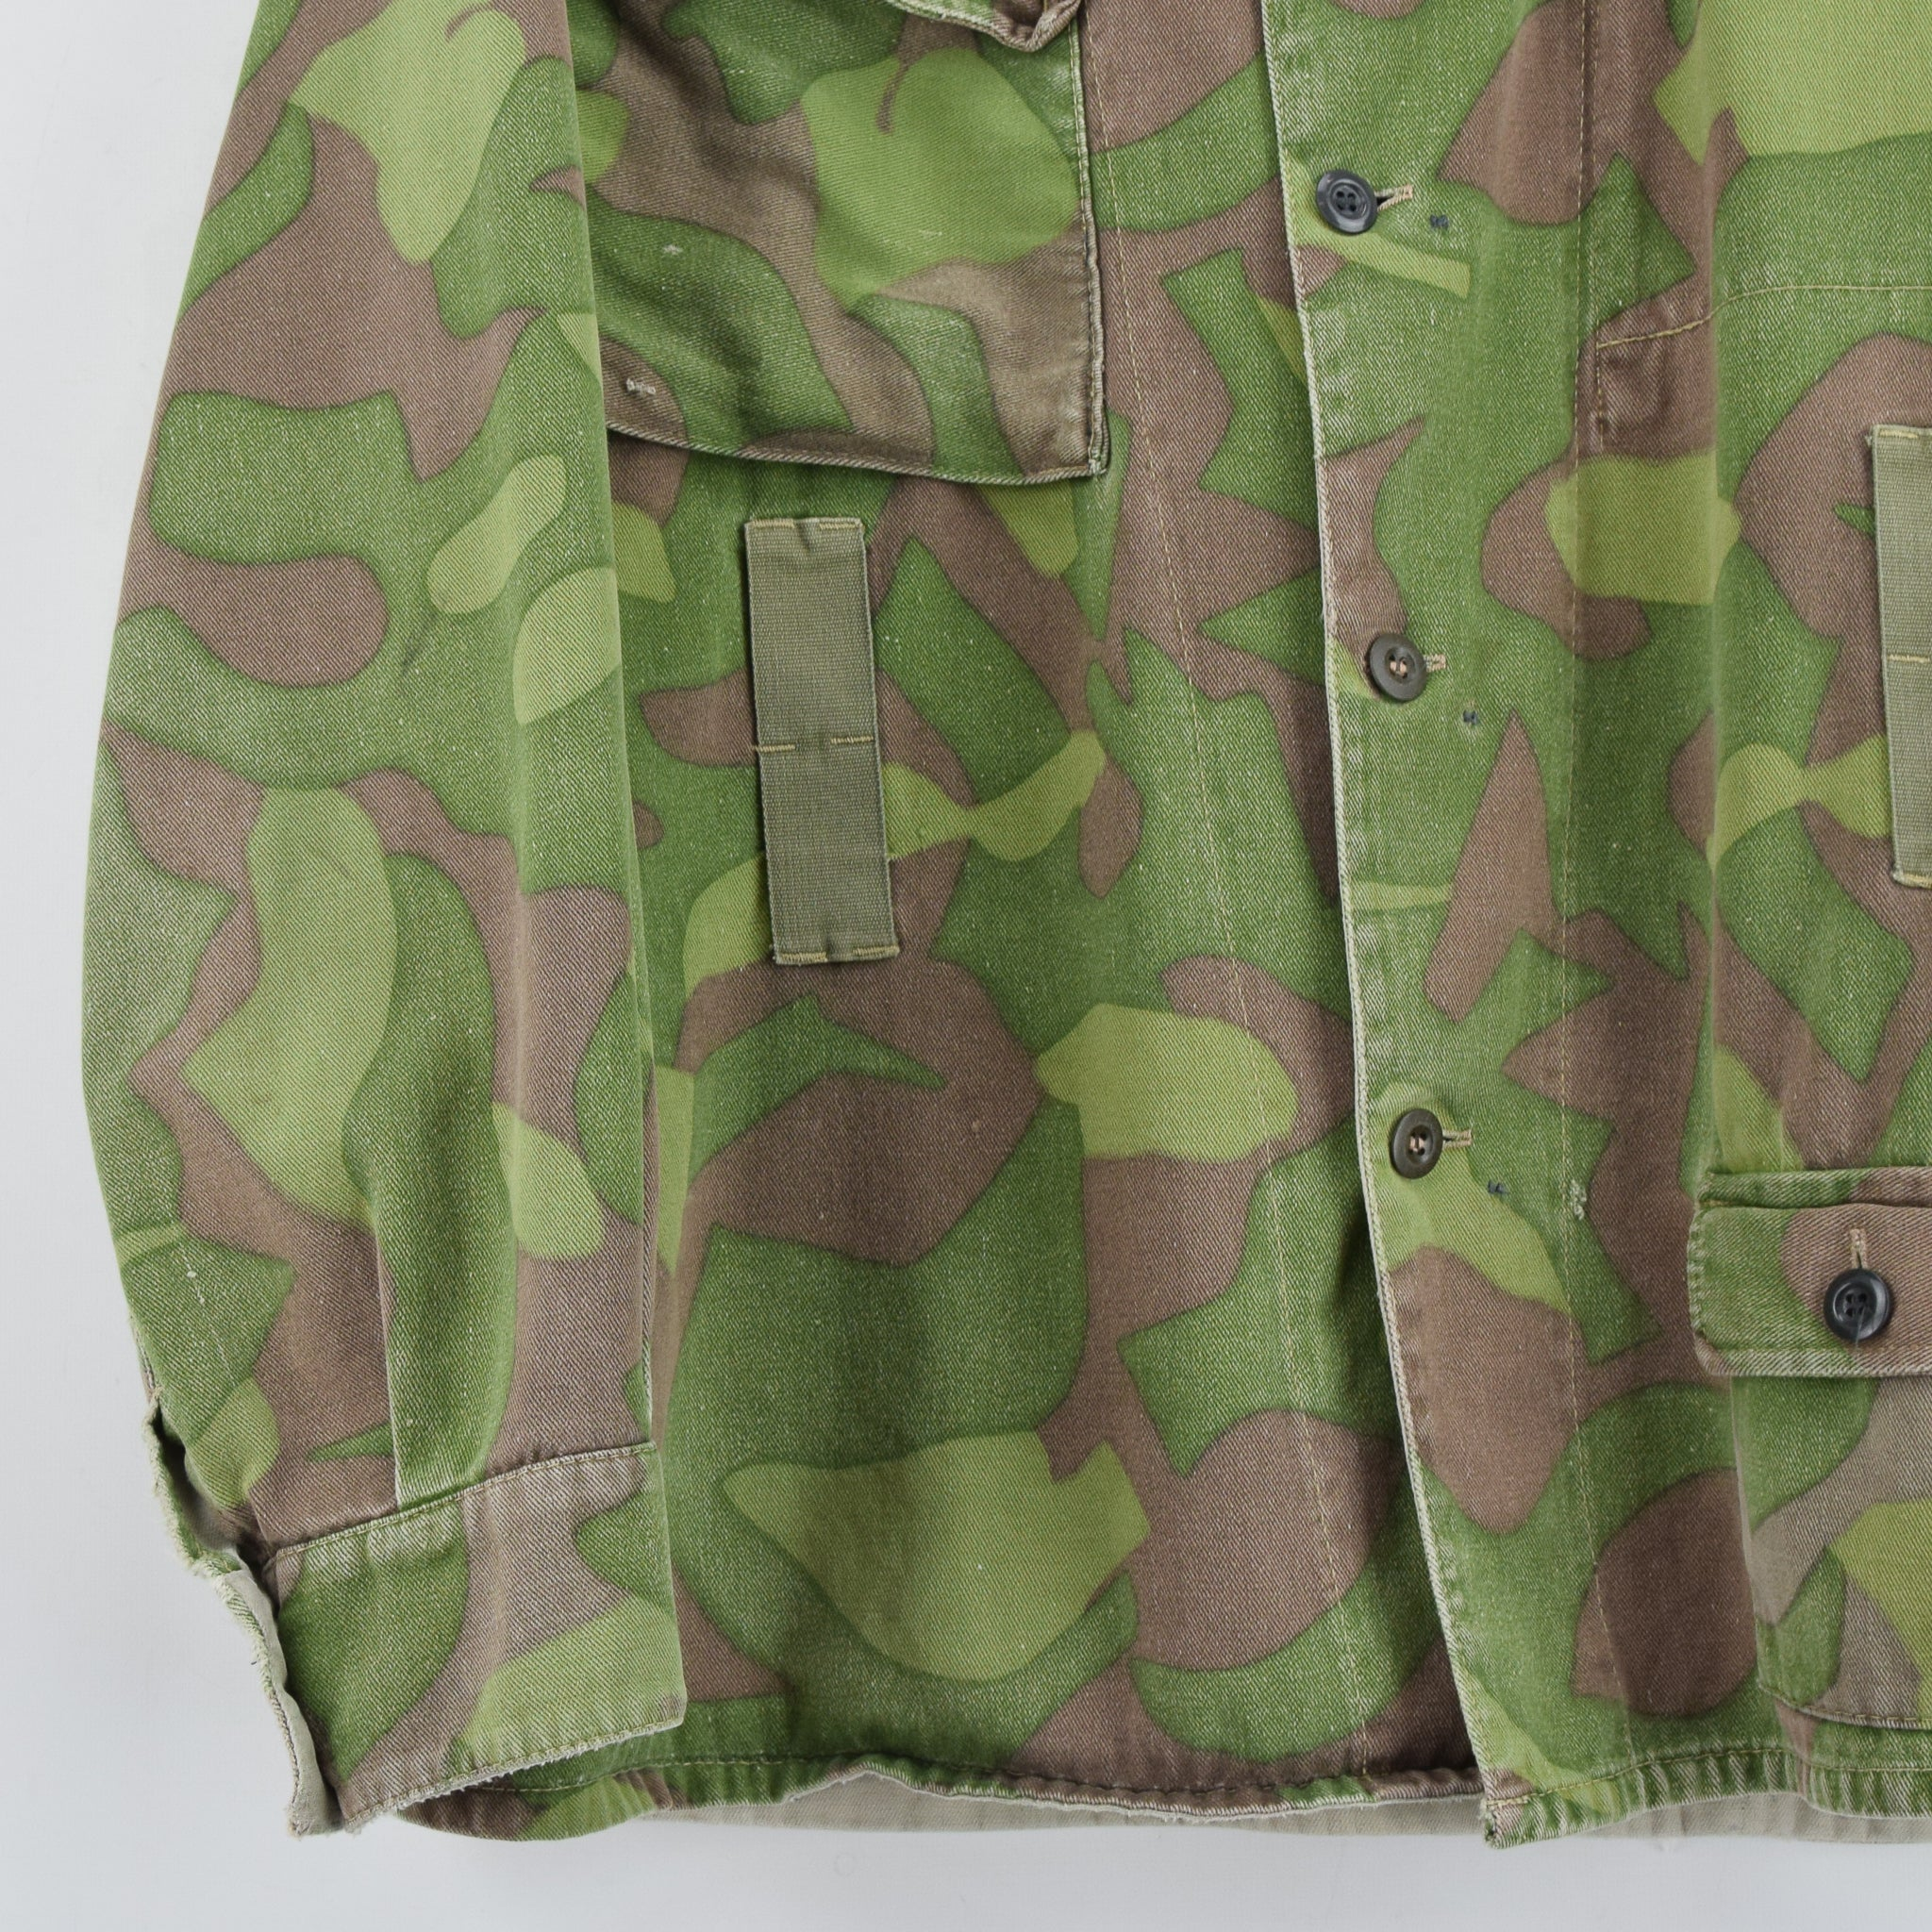 Vintage 60s Military Finnish Army Green Camo Mountain Field Jacket XL front hem